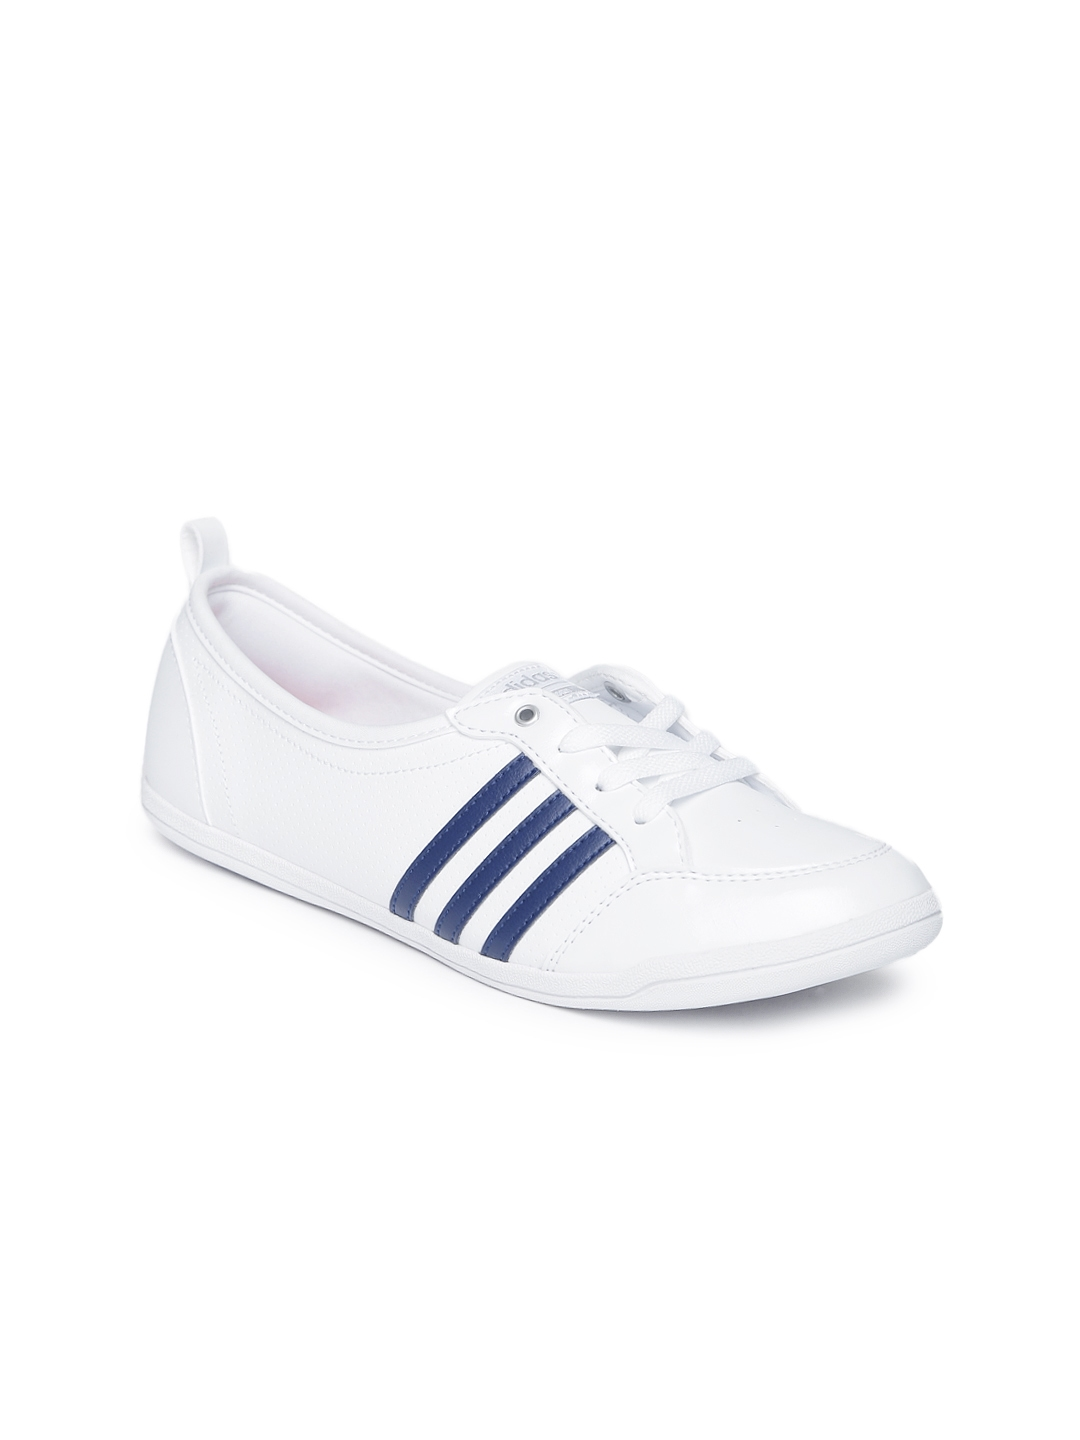 best service ceb2a 97bbf ADIDAS NEO Women White Perforations Cloudfoam Piona Sneakers